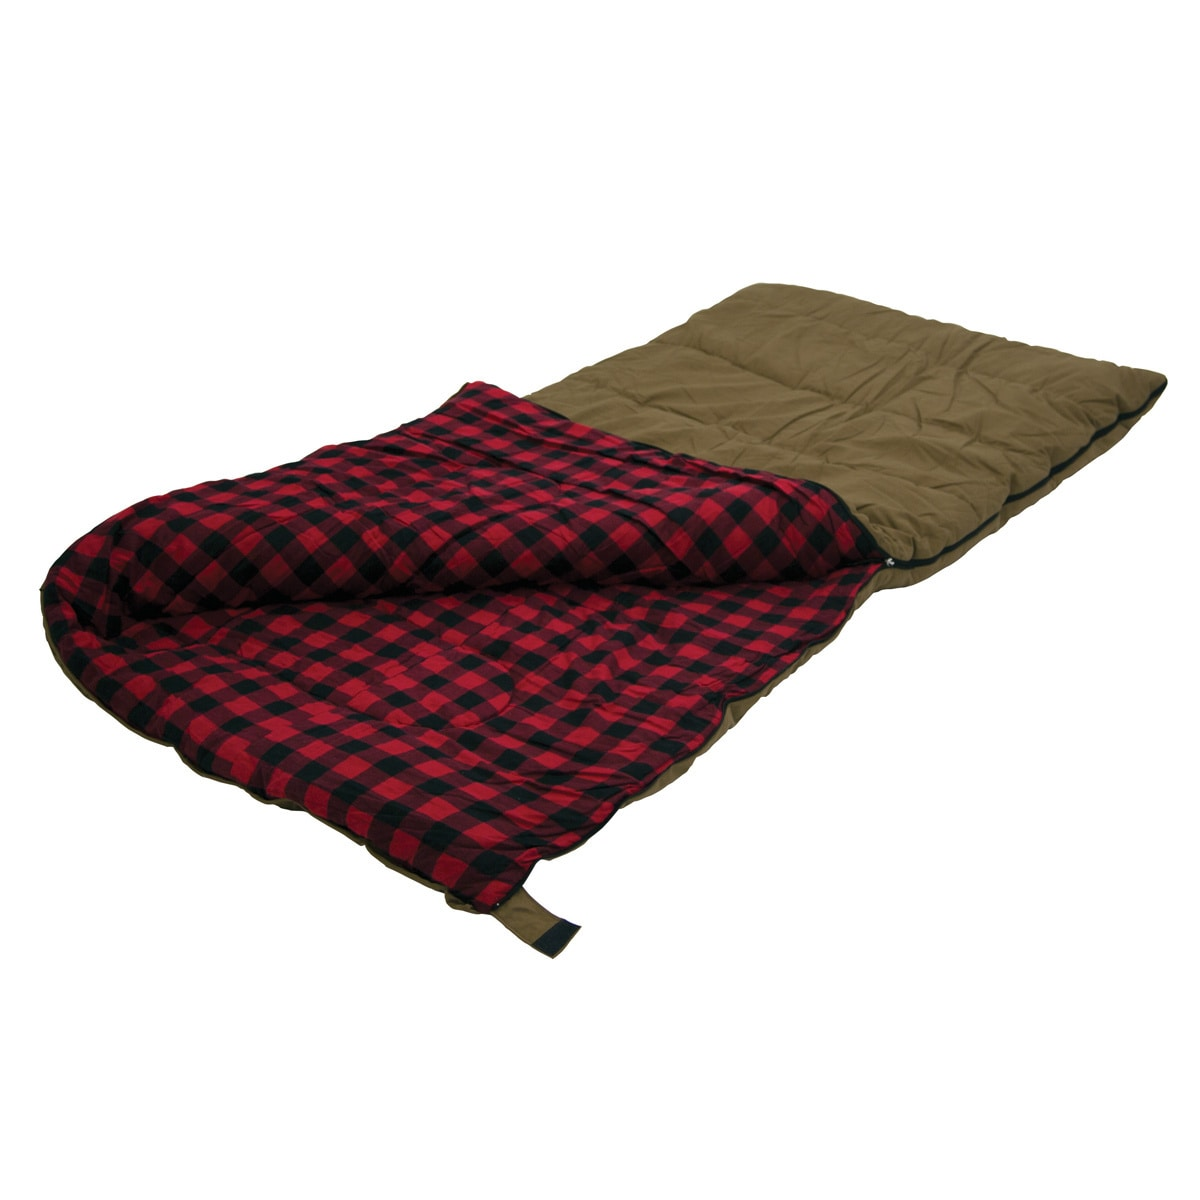 "Stansport Kodiak Canvas 6 lb Sleeping Bag 39"" x 81"" by Stansport"